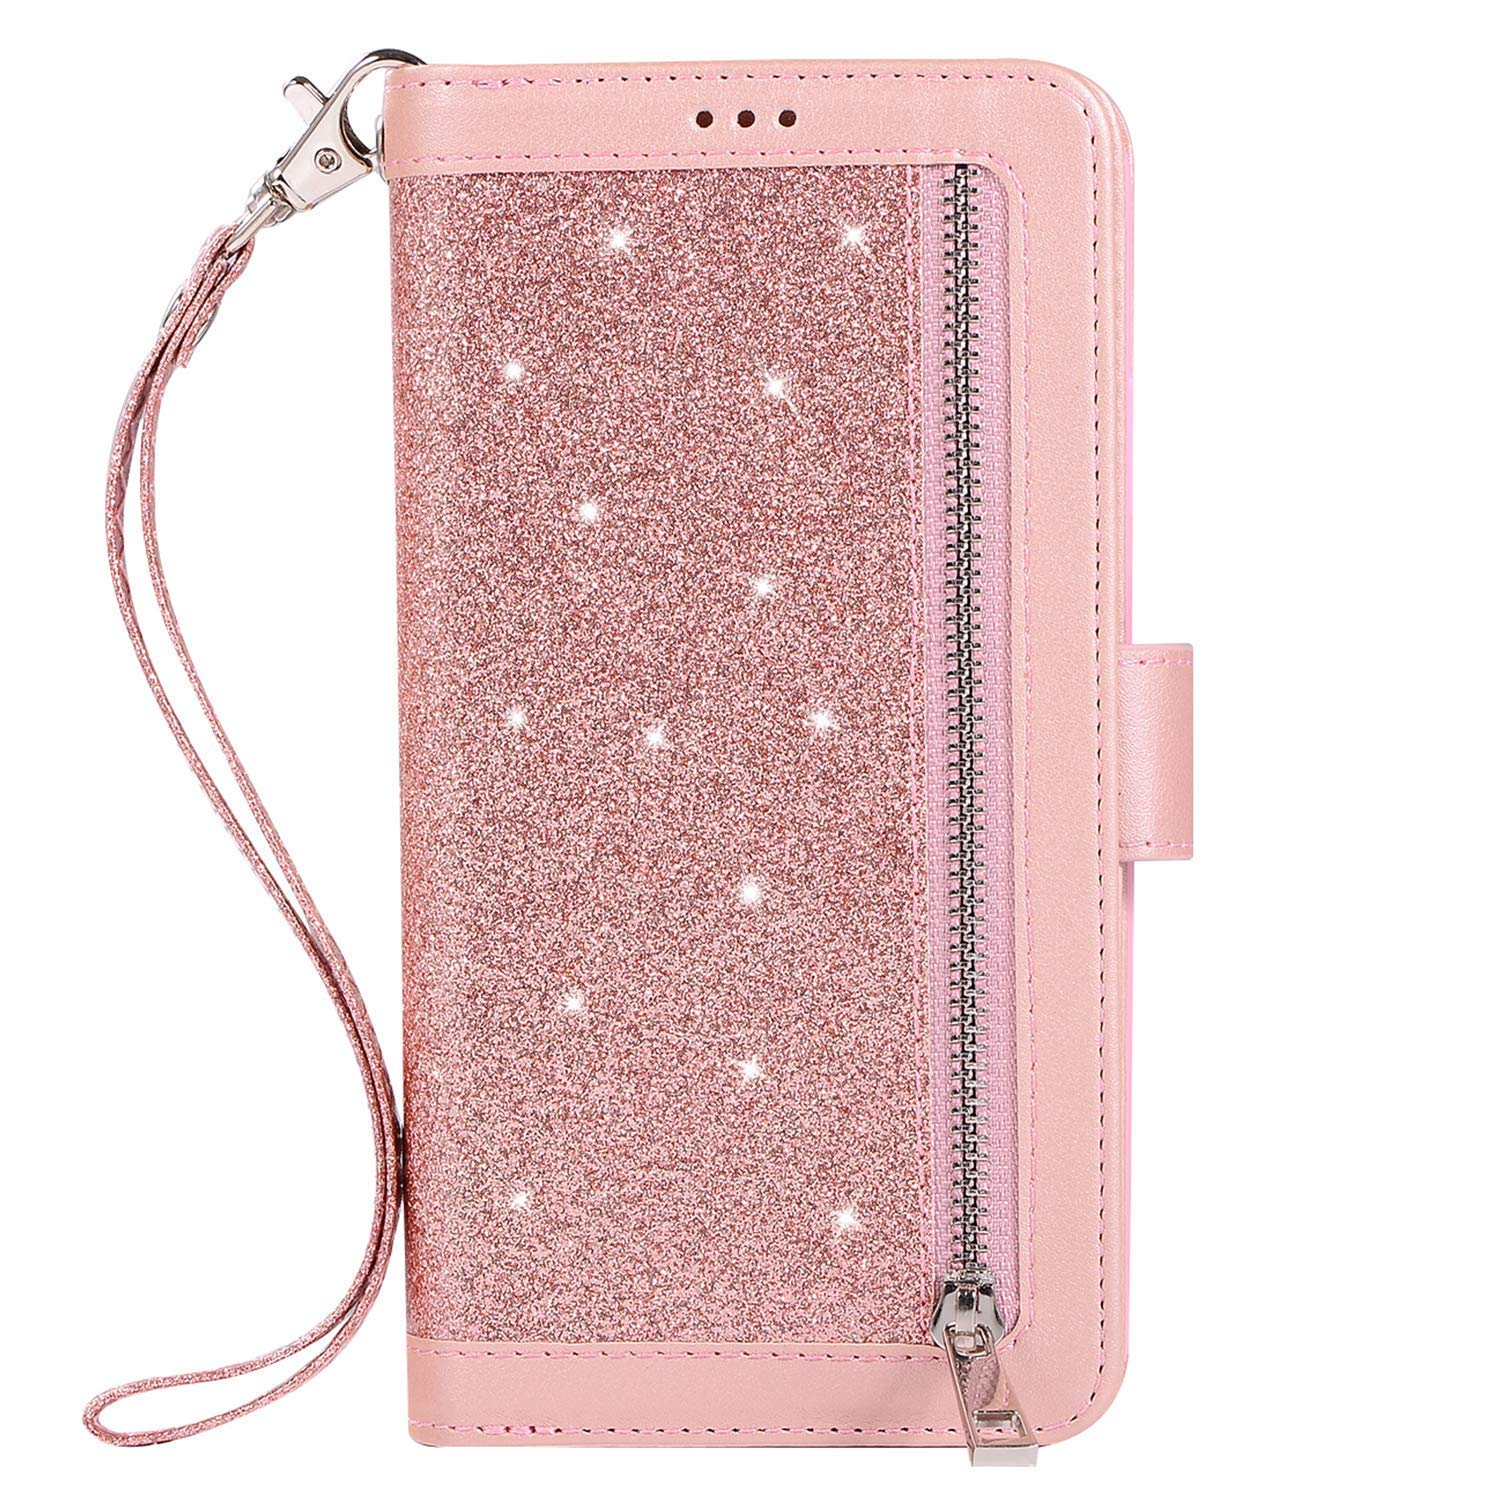 Herbests Compatible with Samsung Galaxy S10 Plus Wallet Case Zipper Luxury Bling Glitter Shockproof Protective Leather Flip Cover 9 Card Slots Magnetic Phone Cover & Strap Kickstand,Rose Gold by Herbests